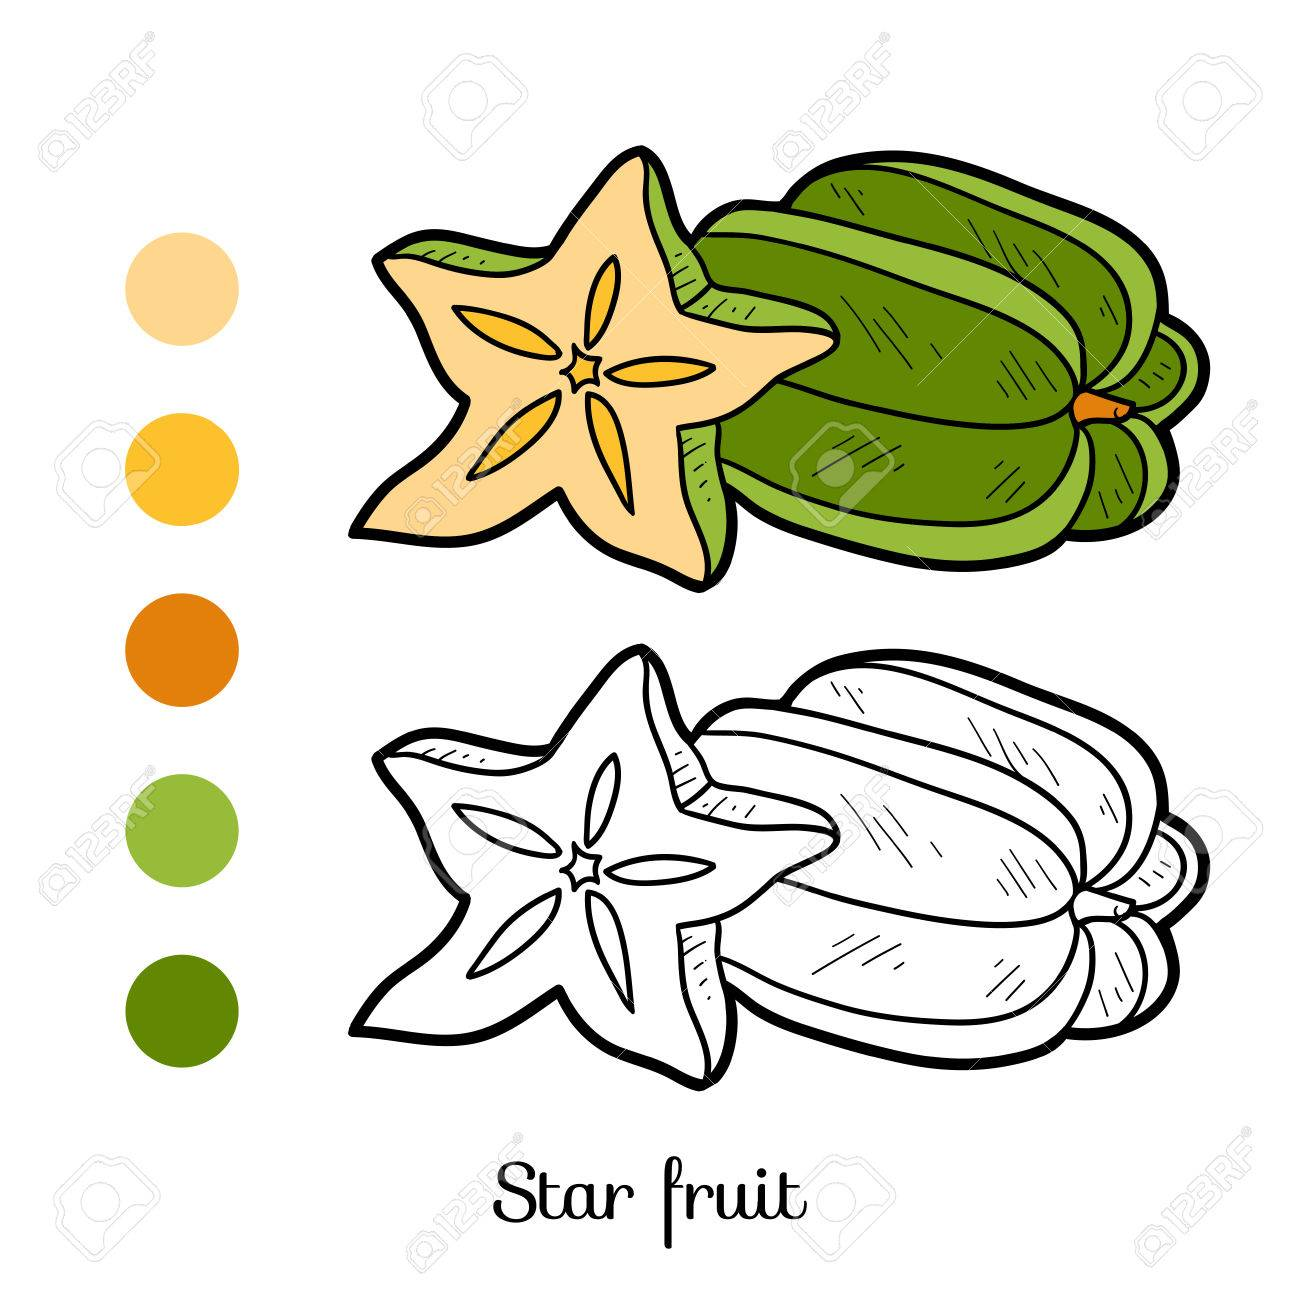 Coloring Book For Children Fruits And Vegetables Star Fruit Stock Vector